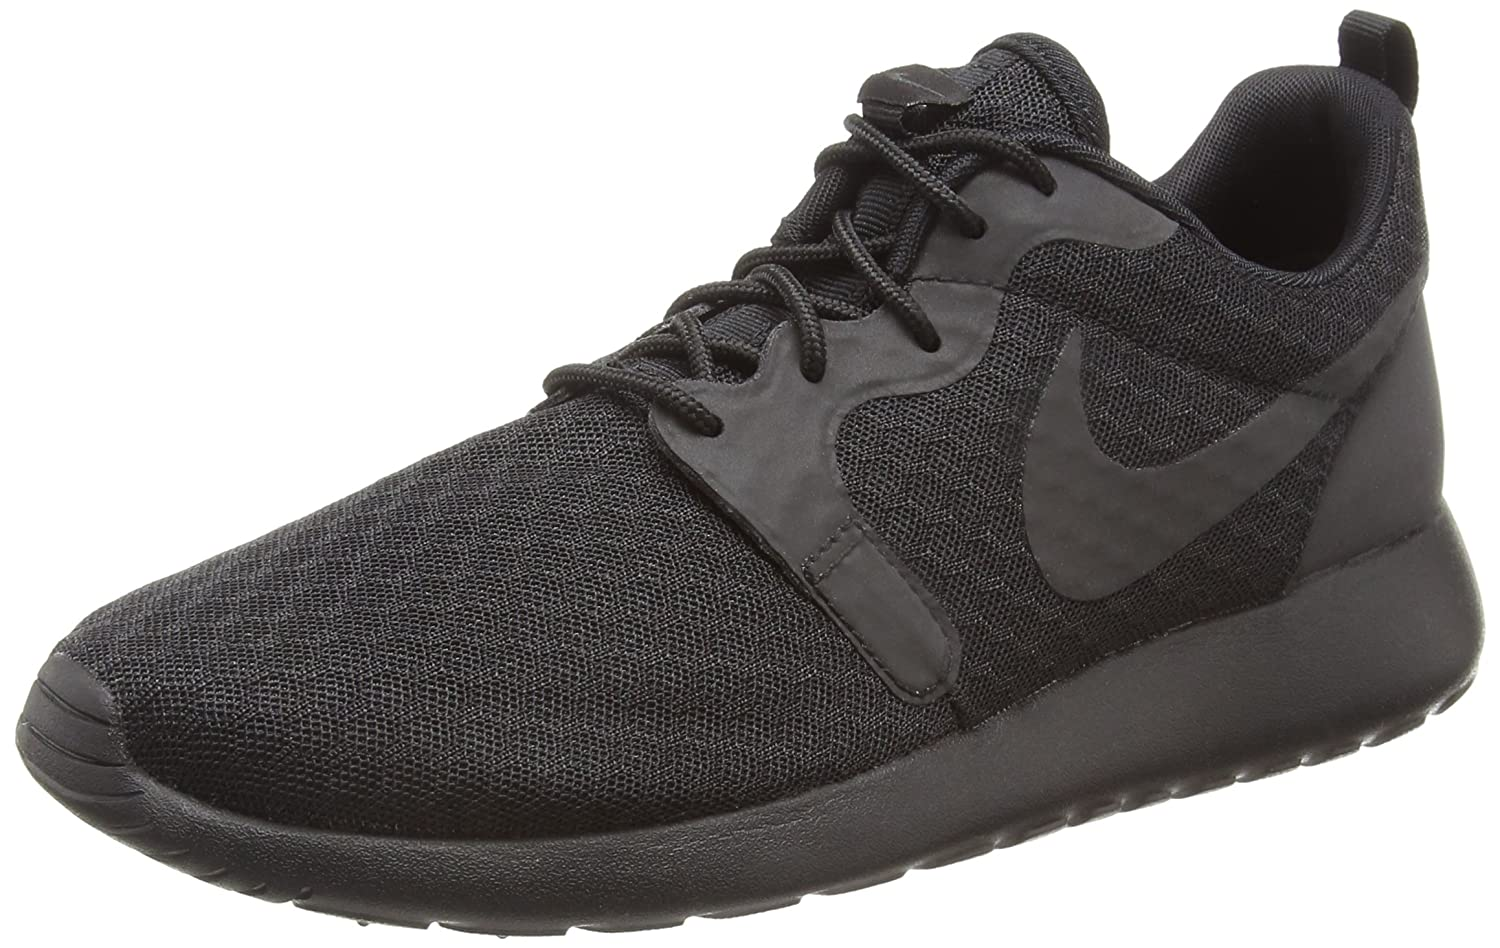 lgzfz Nike Nike Roshe One Hyperfuse, Men\'s Low-Top Sneakers: Amazon.co